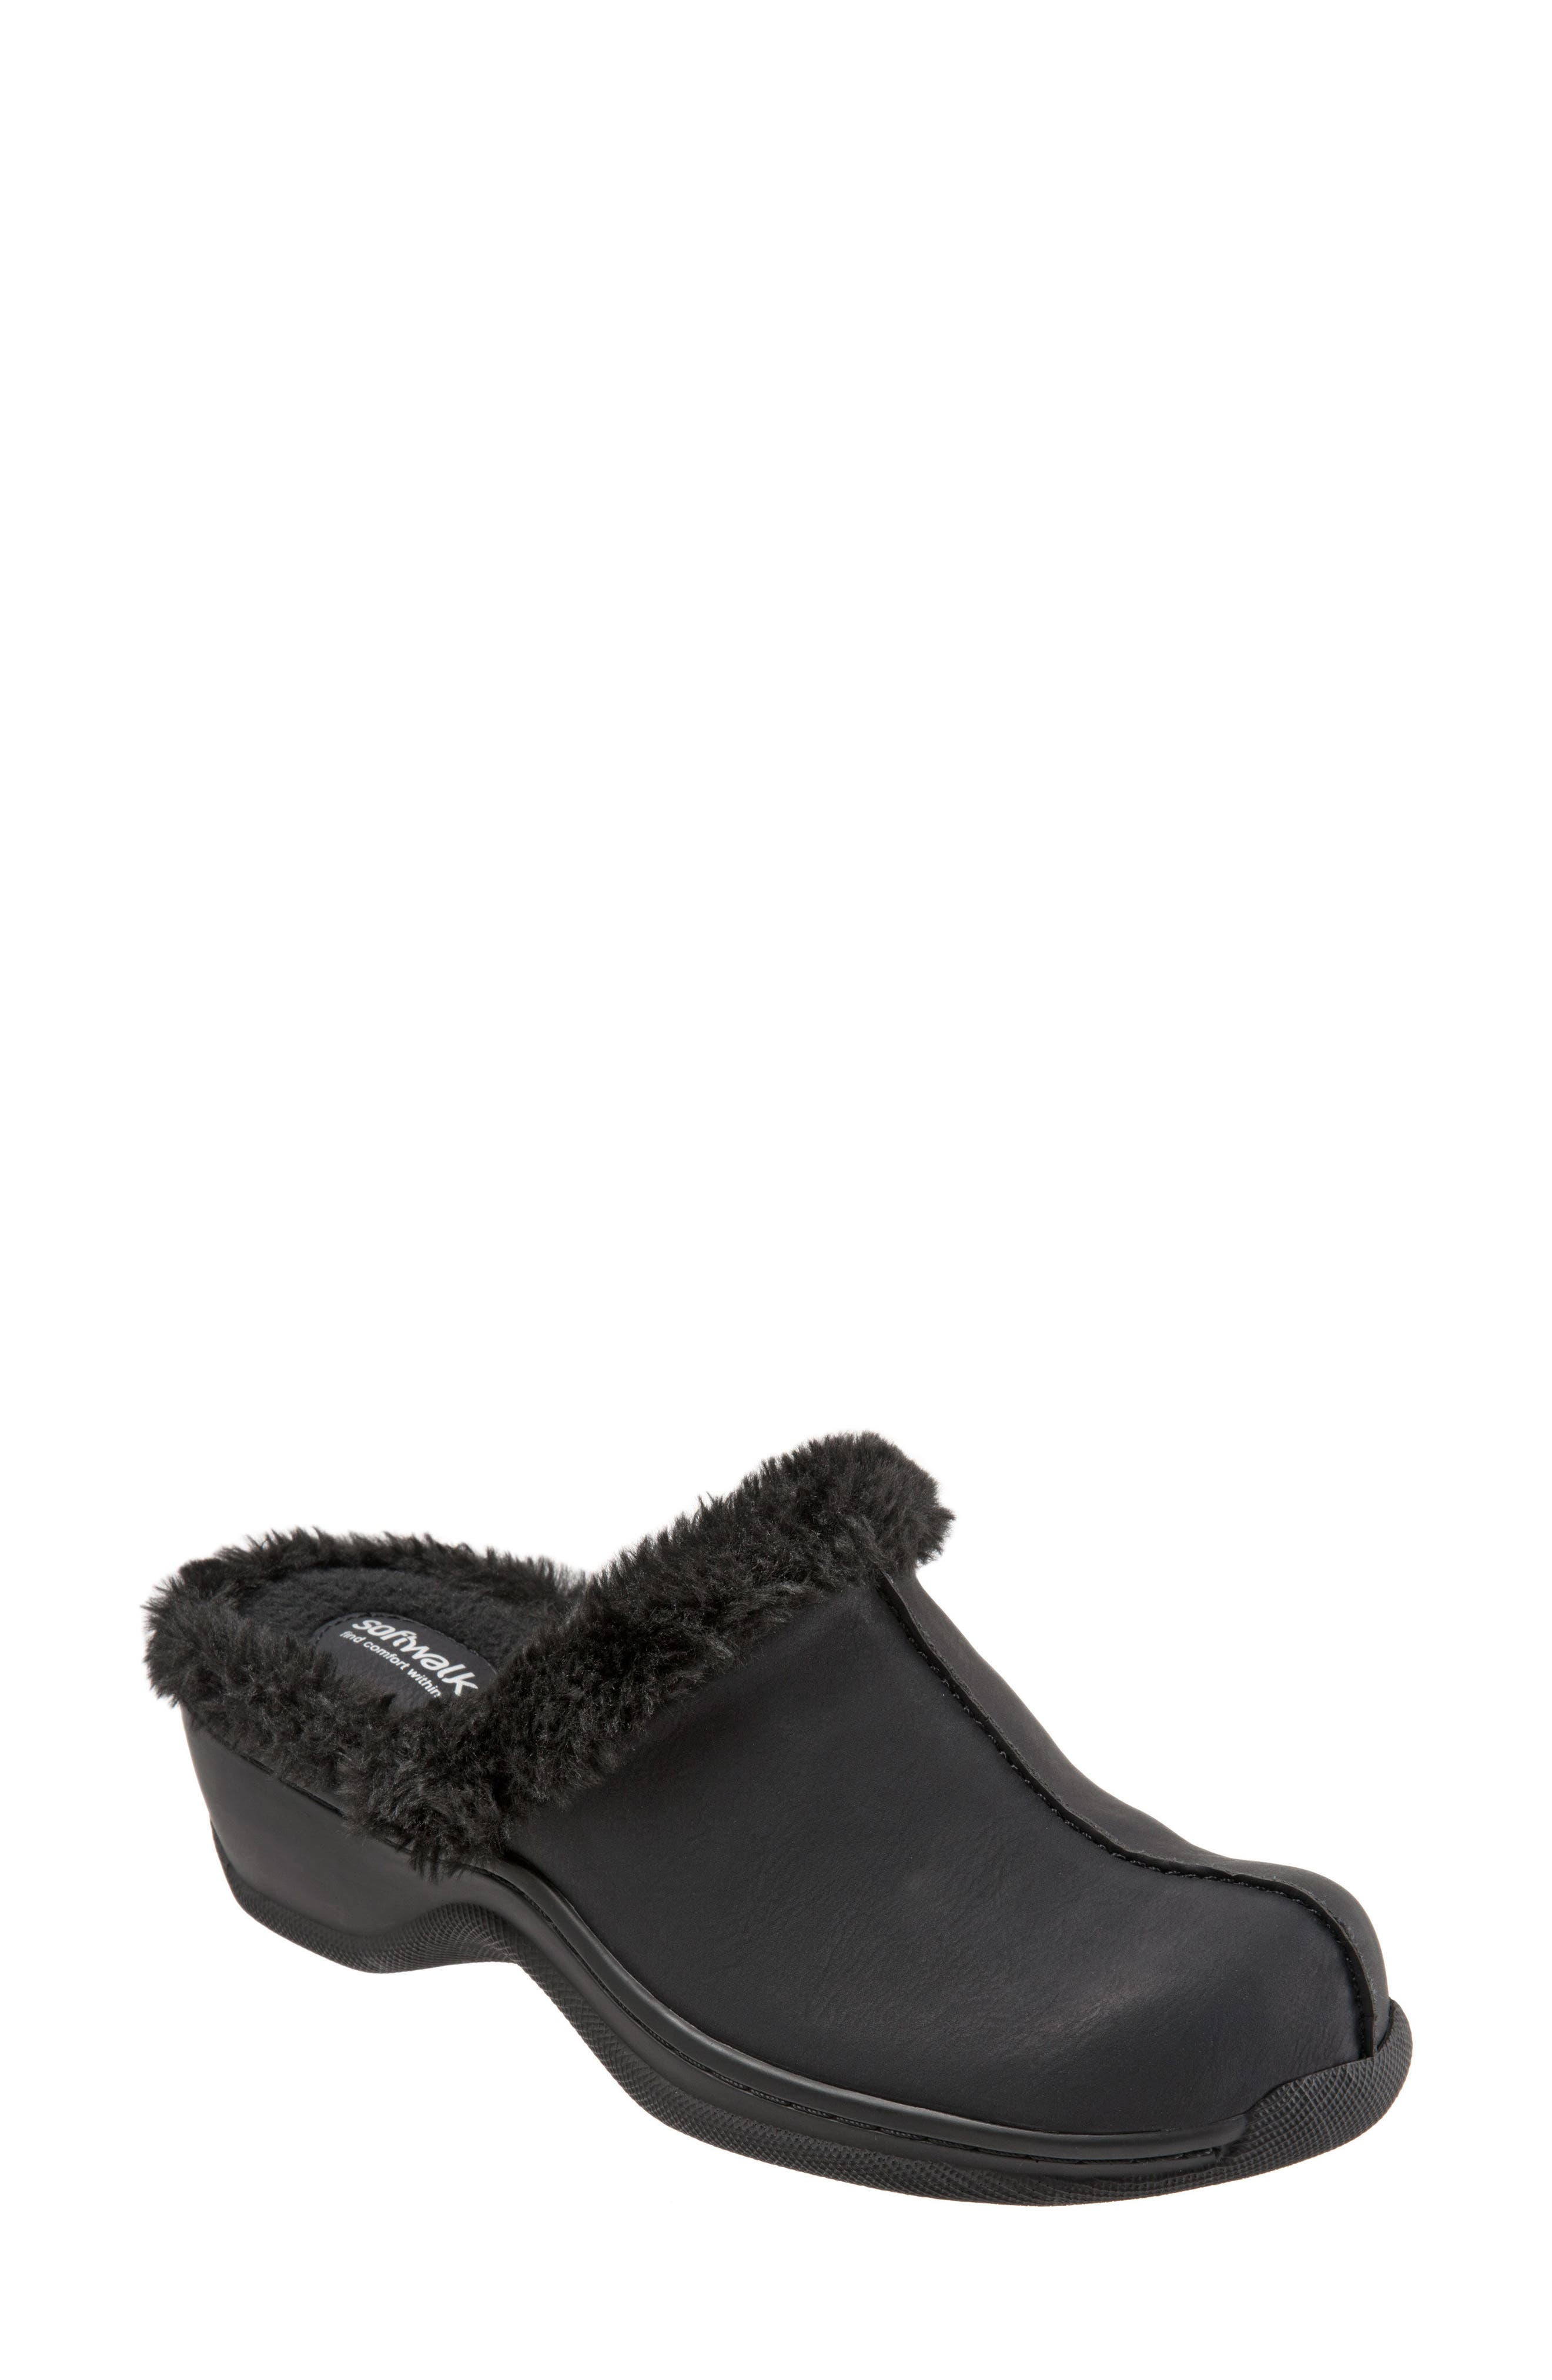 Abigail Clog with Faux Shearling Trim,                         Main,                         color, 004